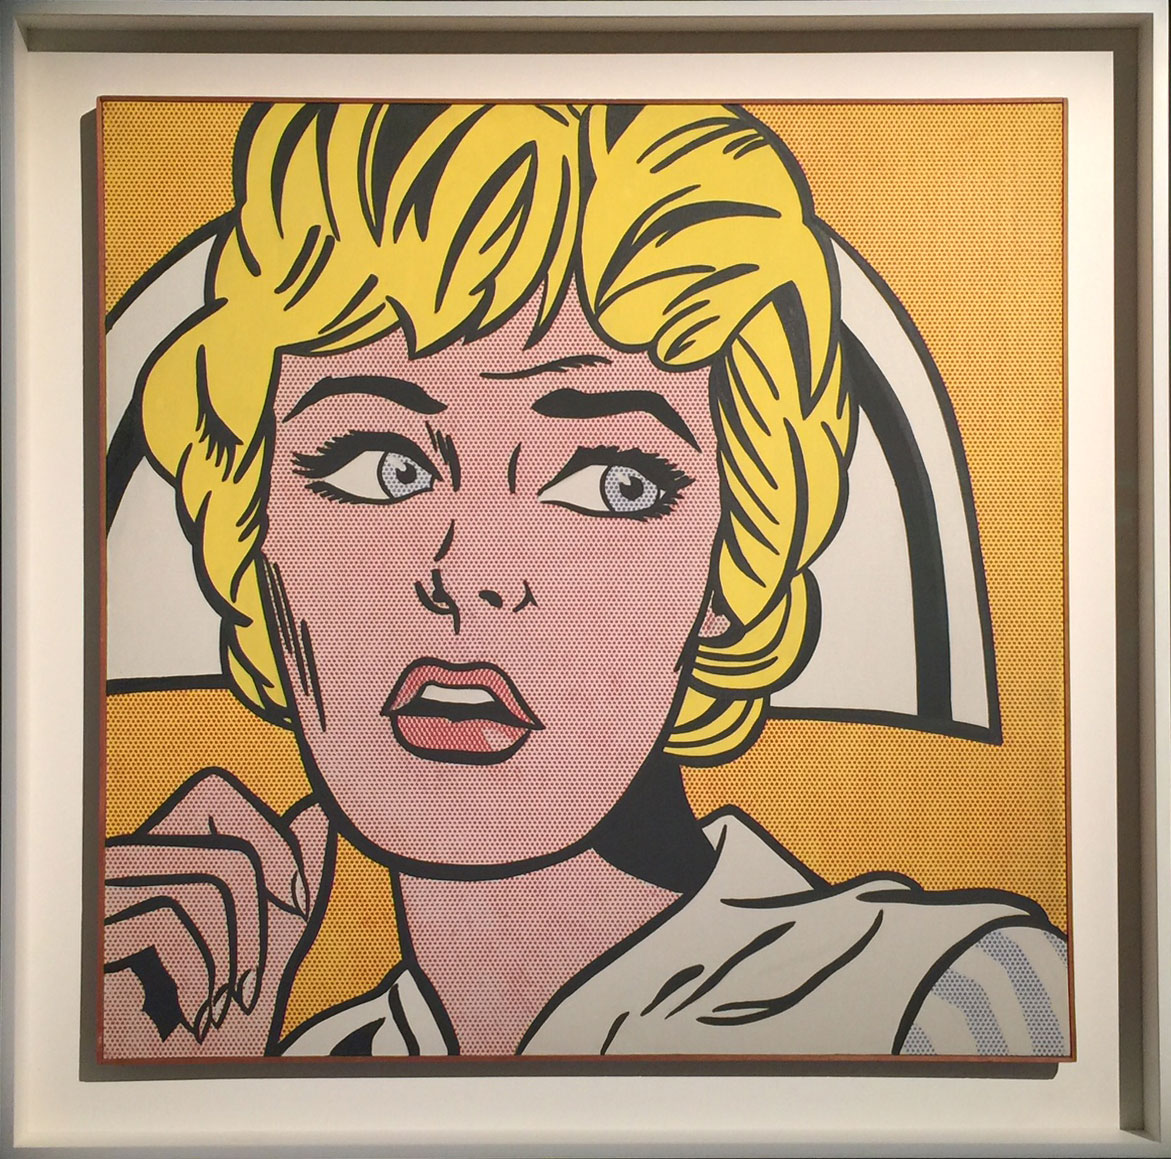 Roy Lichtenstein, Nurse